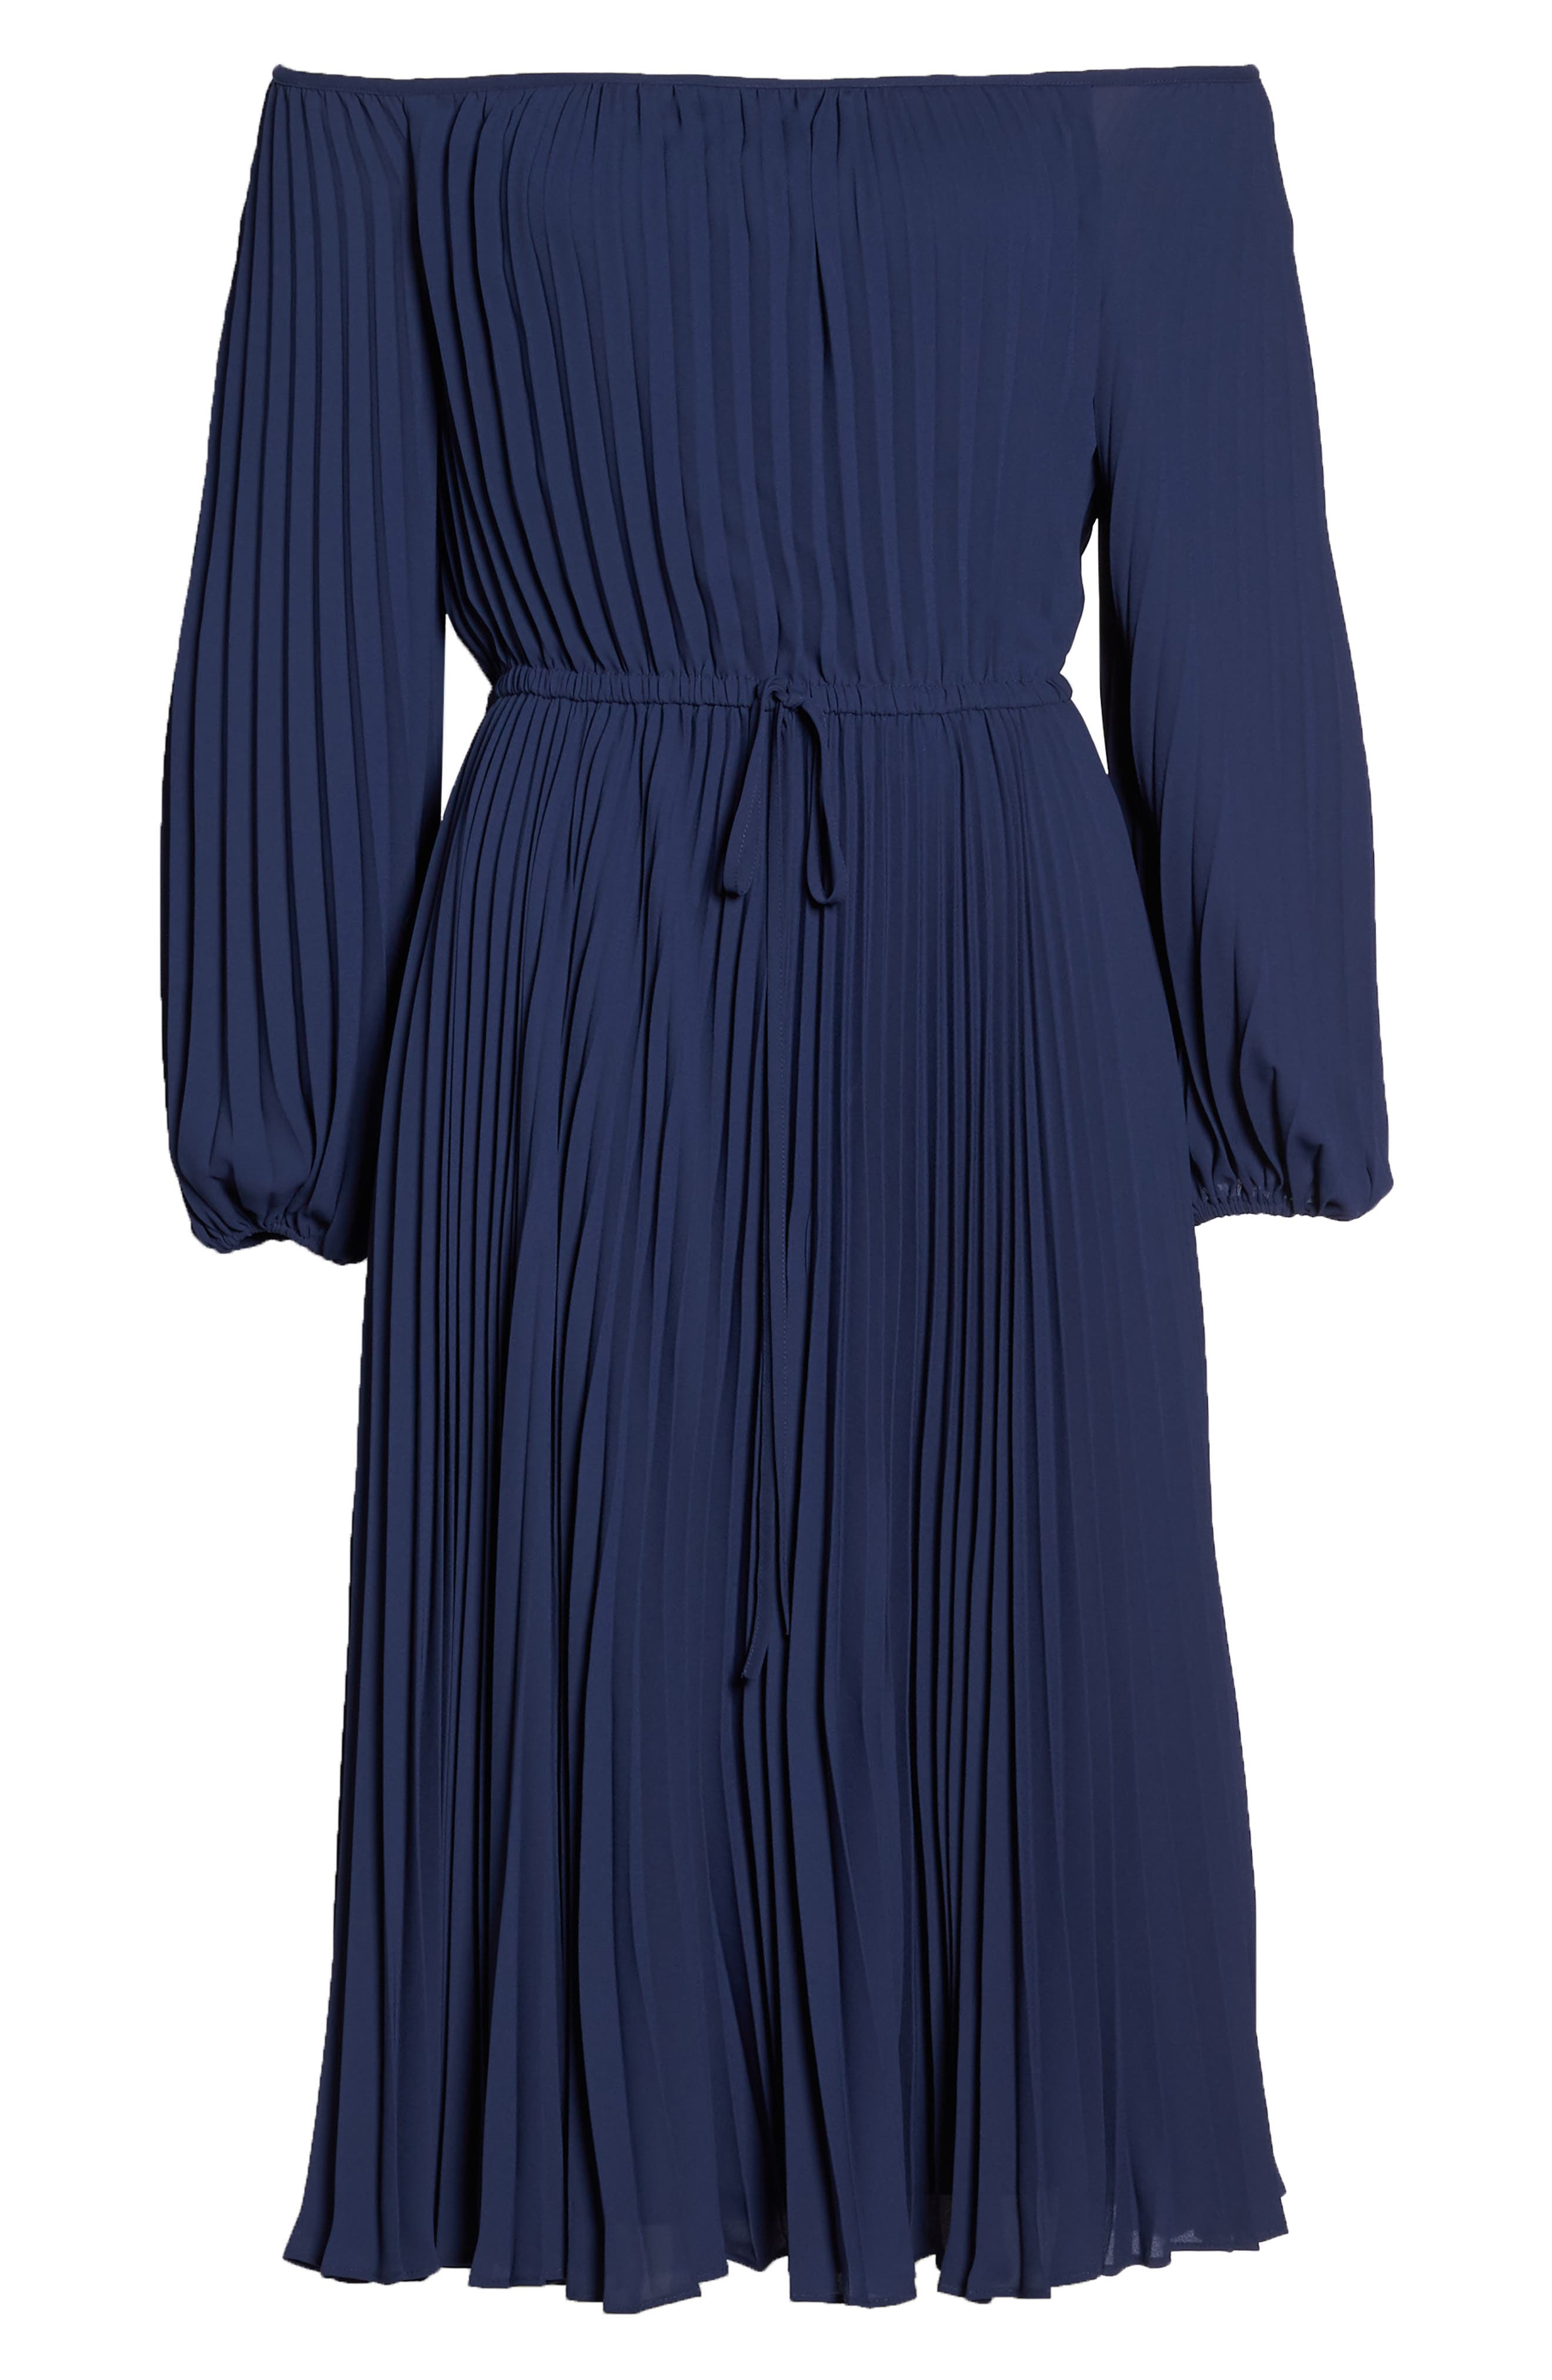 Elise Off the Shoulder Pleated Georgette Dress,                             Alternate thumbnail 7, color,                             NAVY W/ SELF PIPING